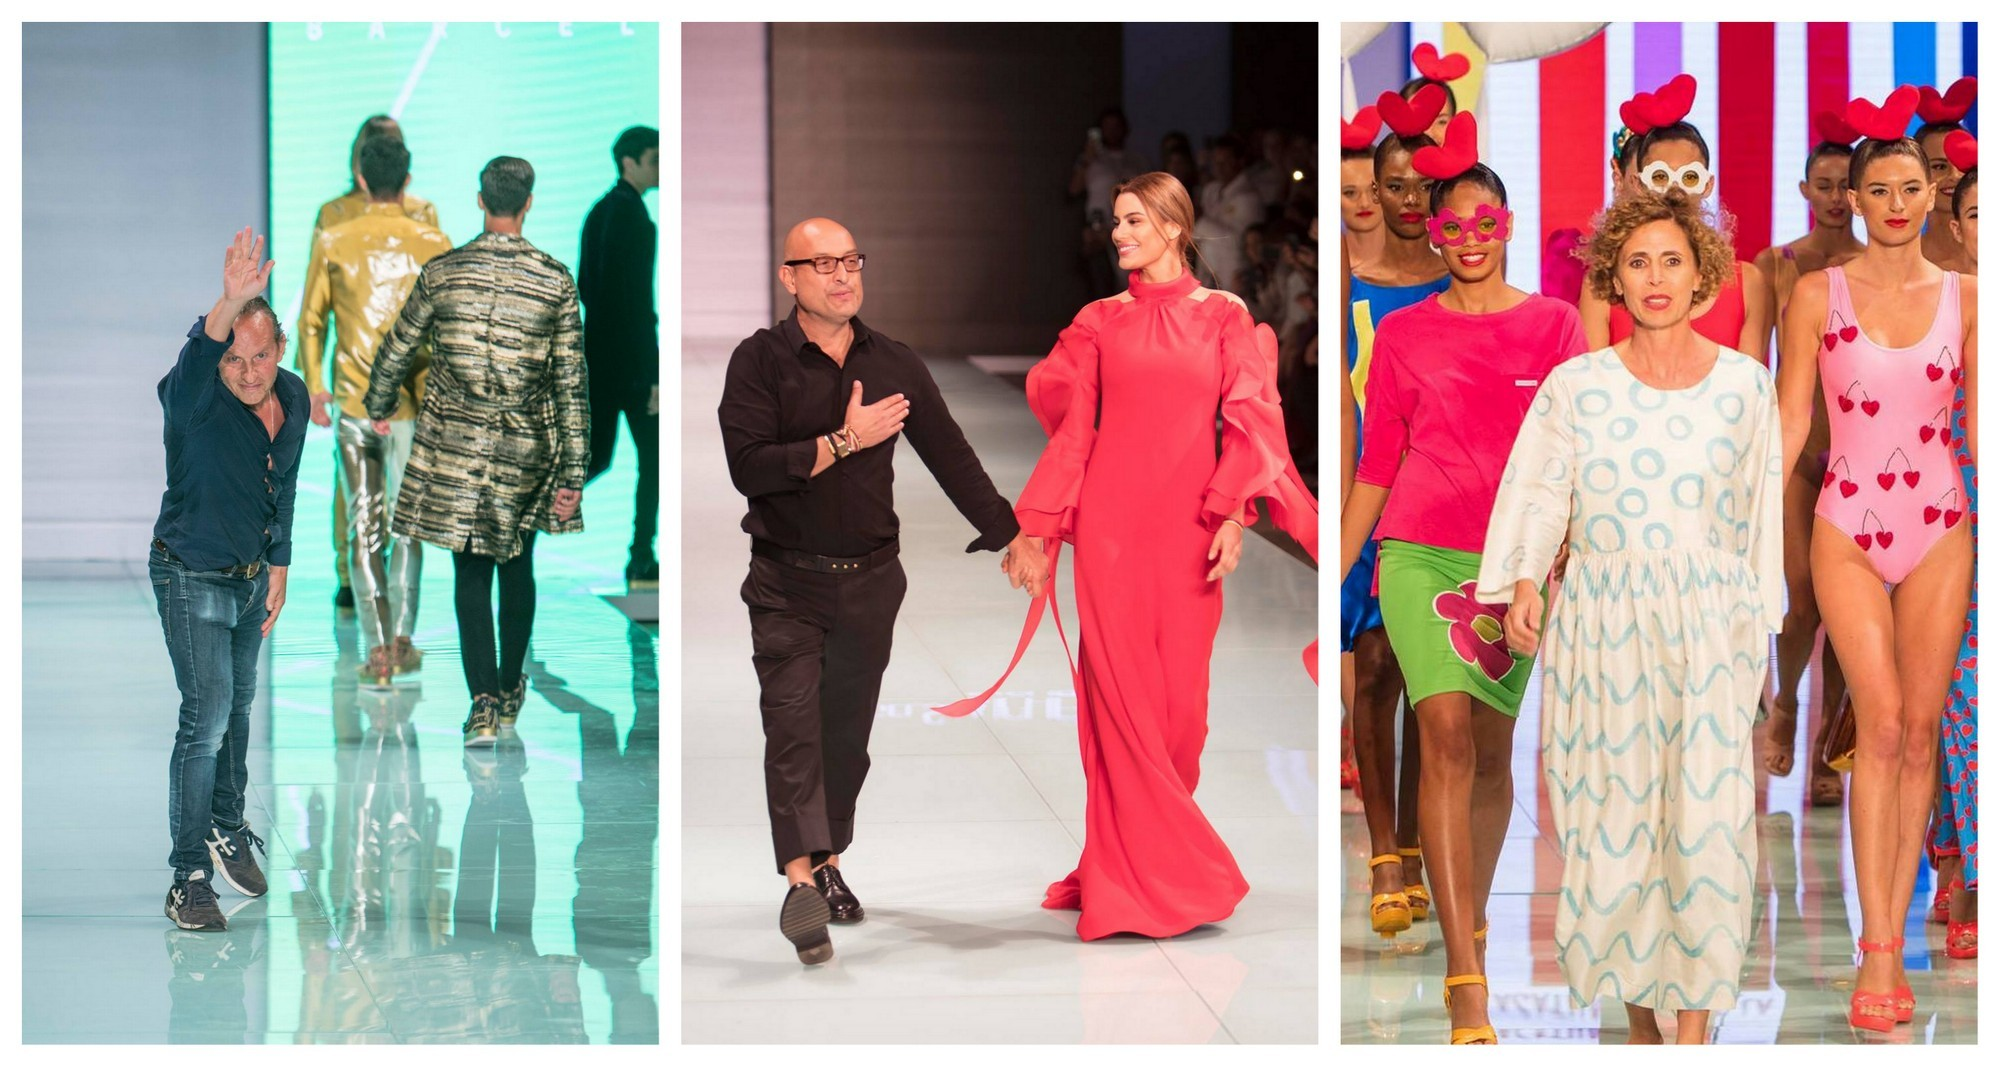 Miami Fashion Week debuts tomorrow with never-before-seen collections from international designers  Custo Barcelona, Ángel Sánchez & Ágatha Ruiz De La Prada, among others